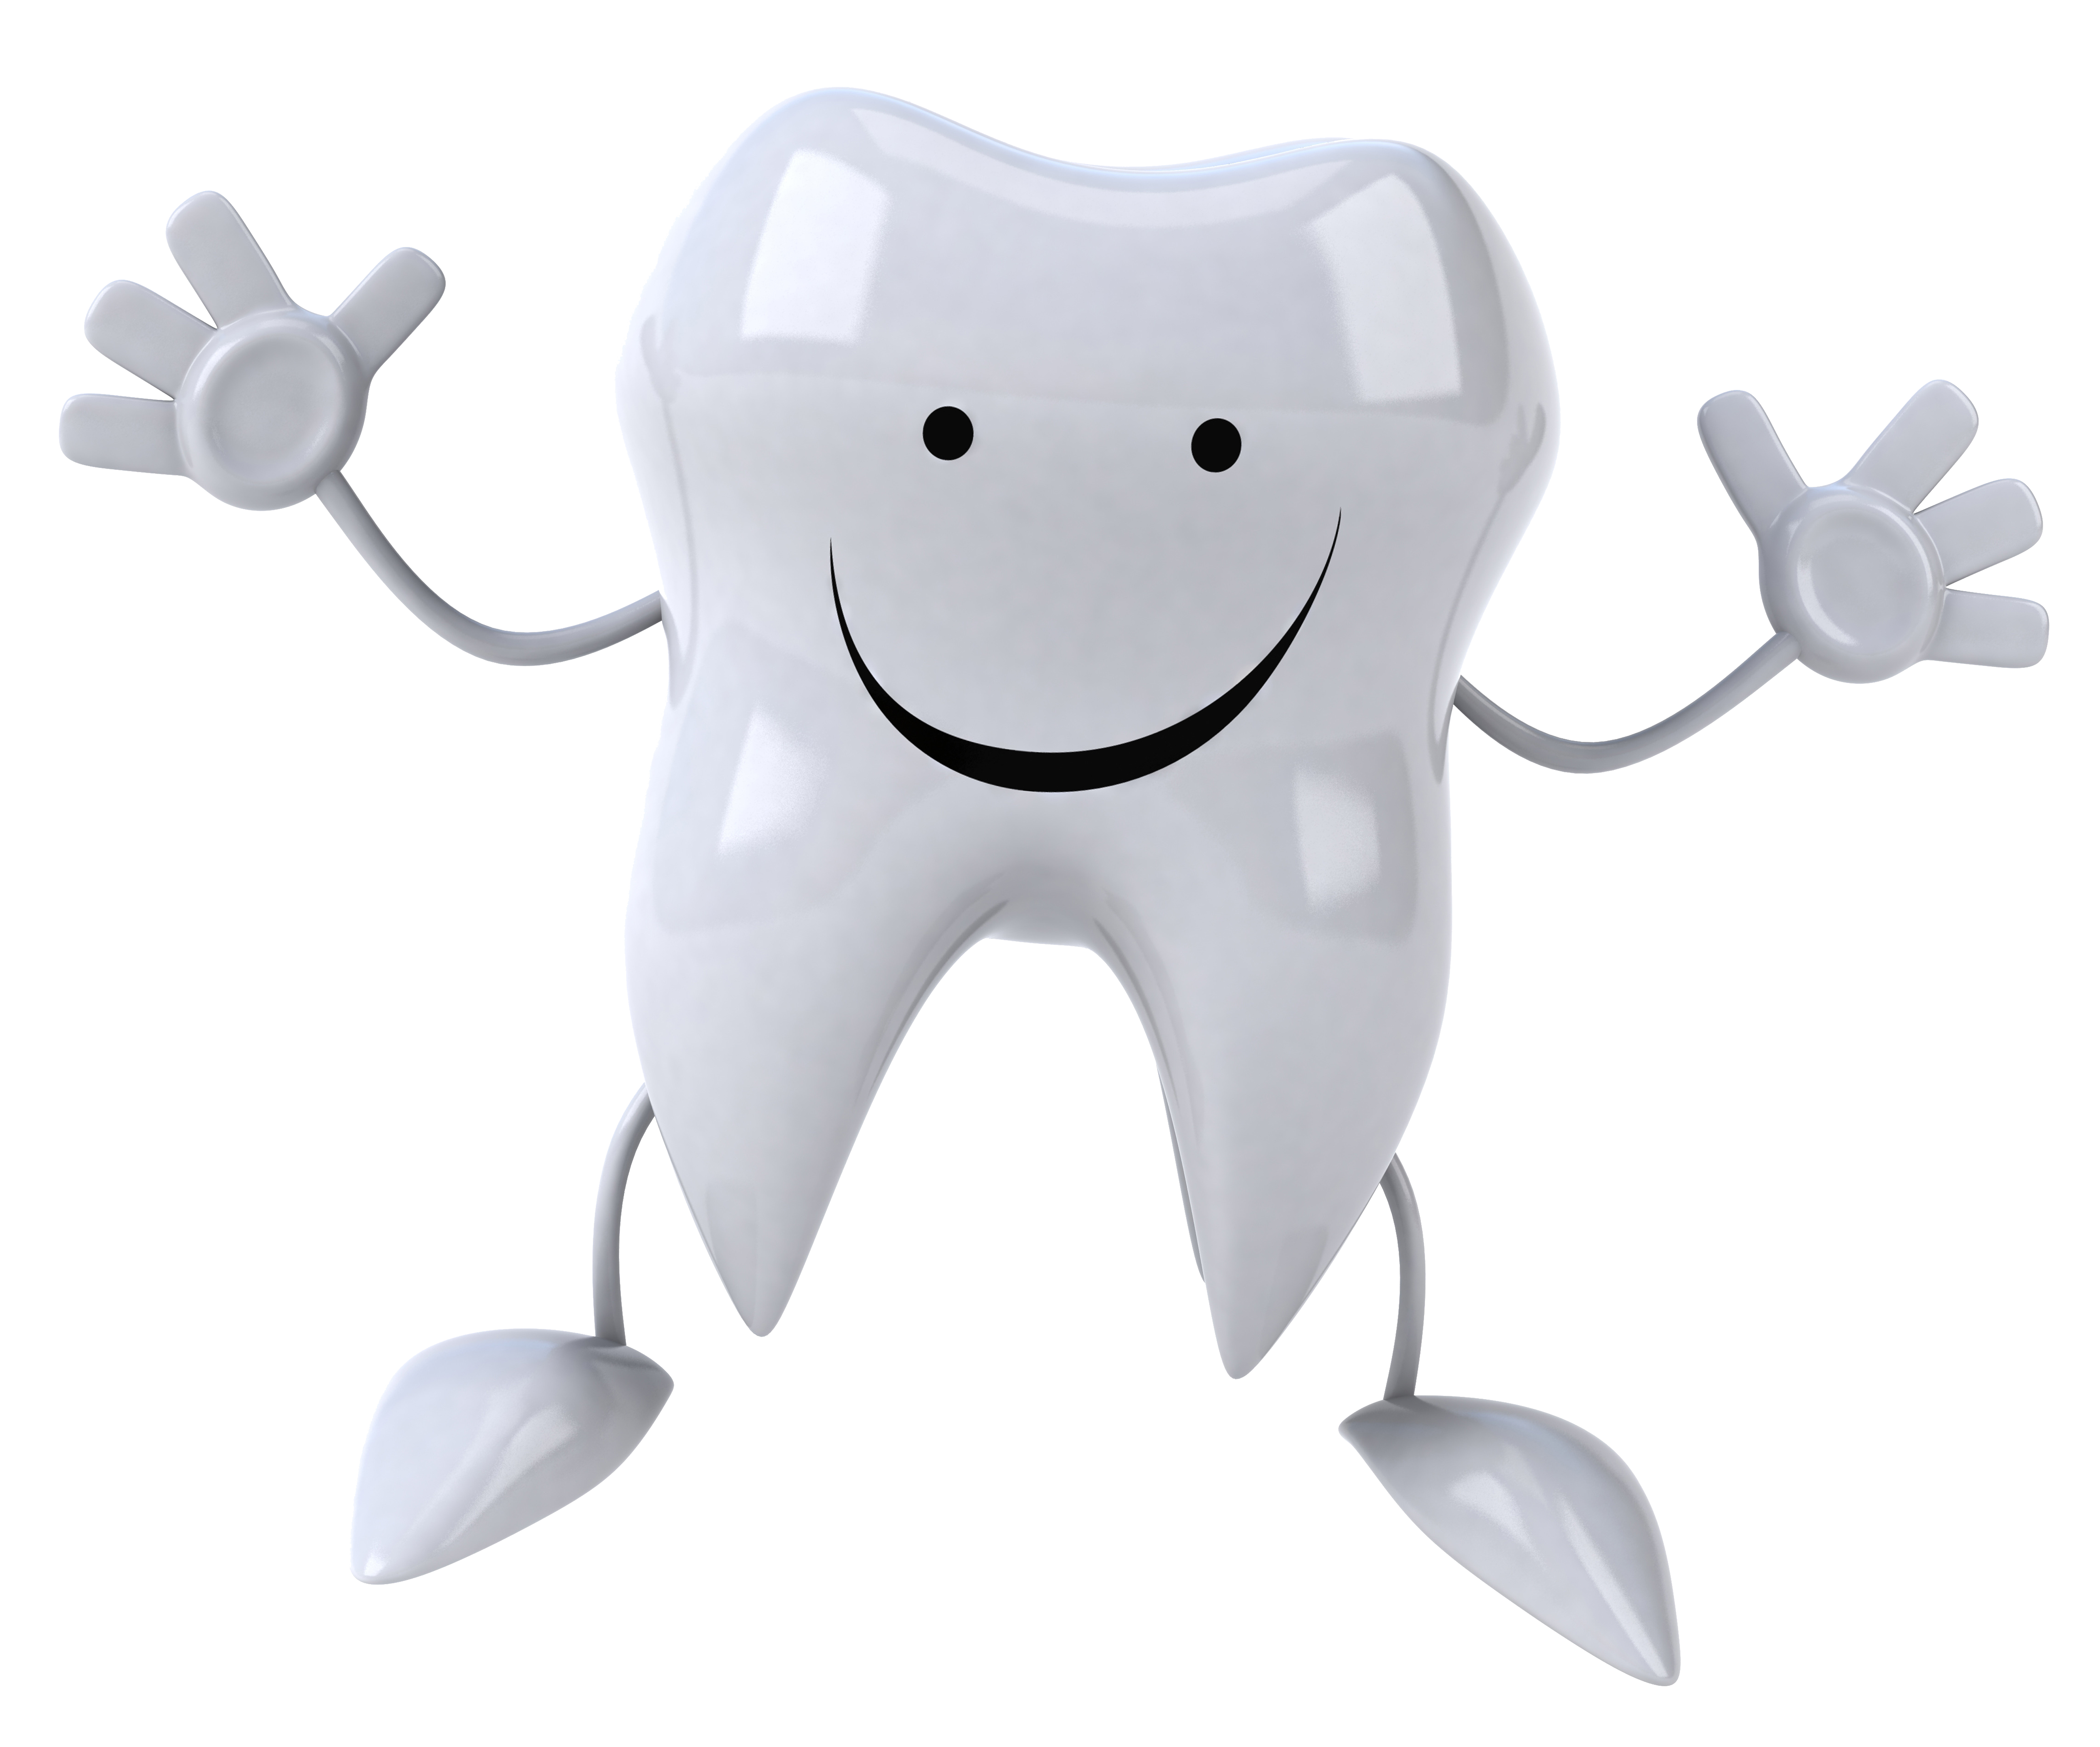 Tooth clipart crown image freeuse library Dentistry Human tooth Royalty-free Crown - White Teeth 5454*4537 ... image freeuse library